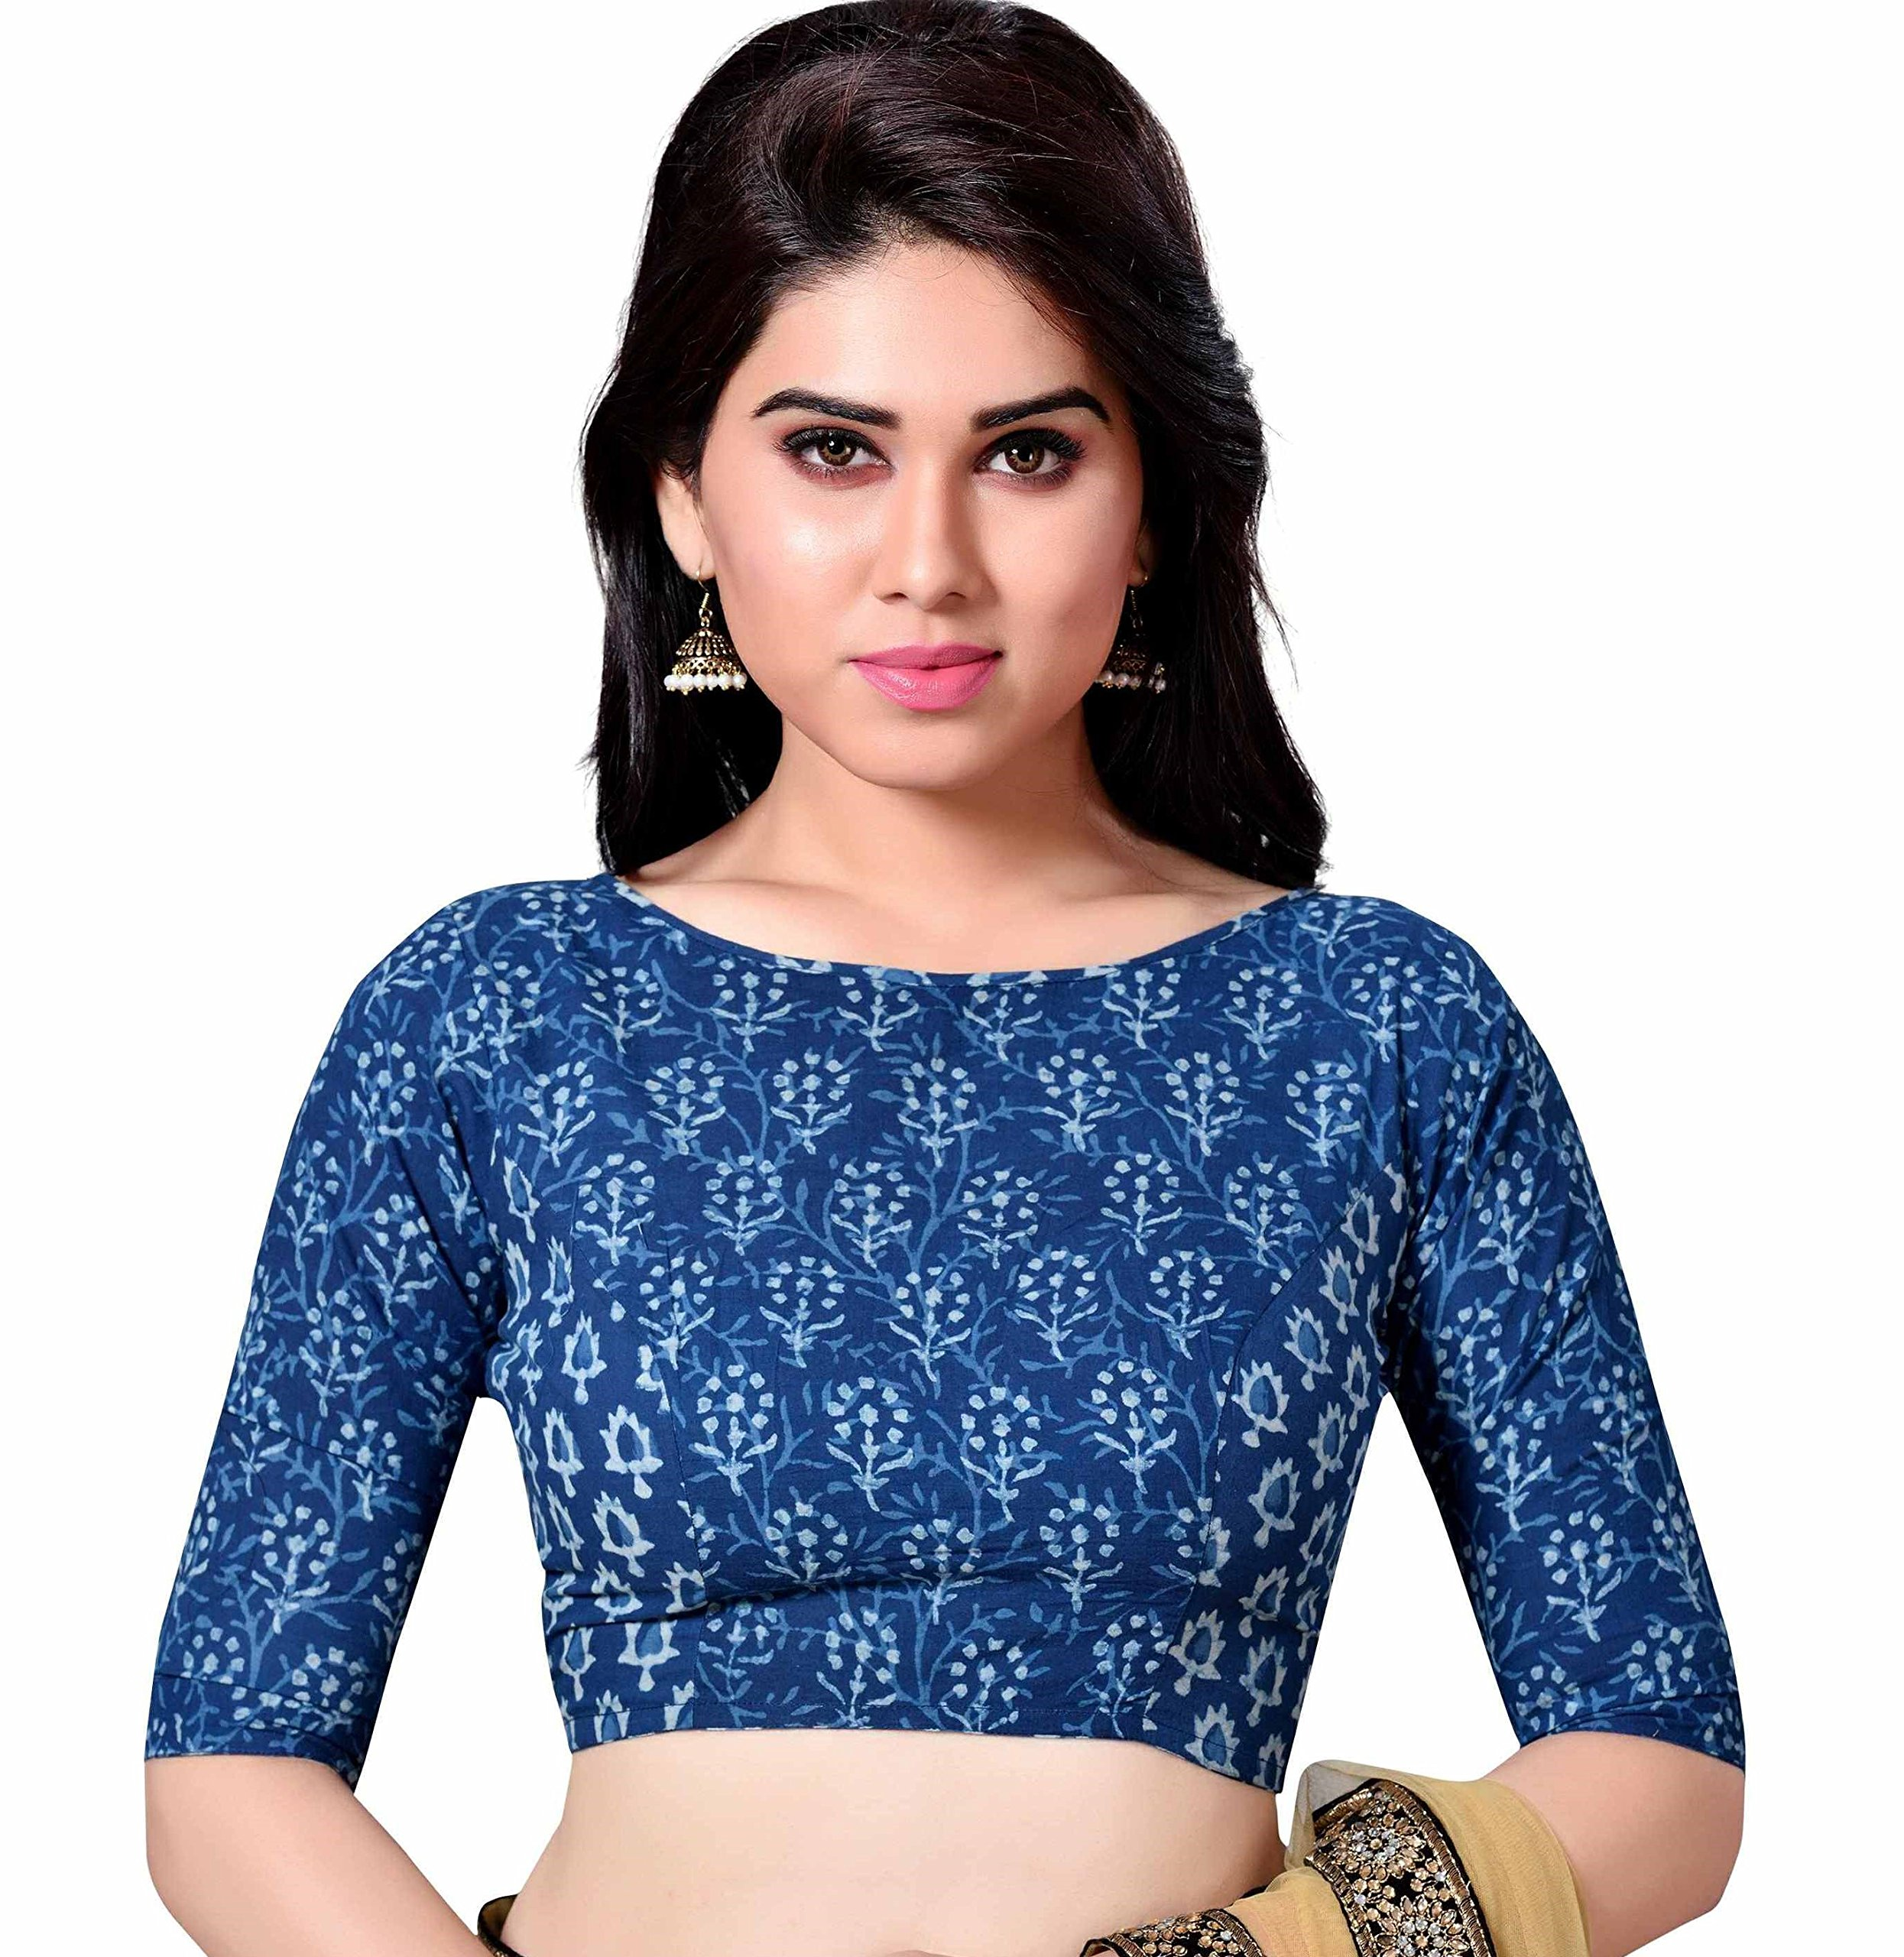 a8c9727bc6ae6 STUDIO SHRINGAAR LATEST PURE COTTON BLUE JAIPURI BLOCK PRINTED WOMENS SAREE  BLOUSE WITH BOAT NECK AND